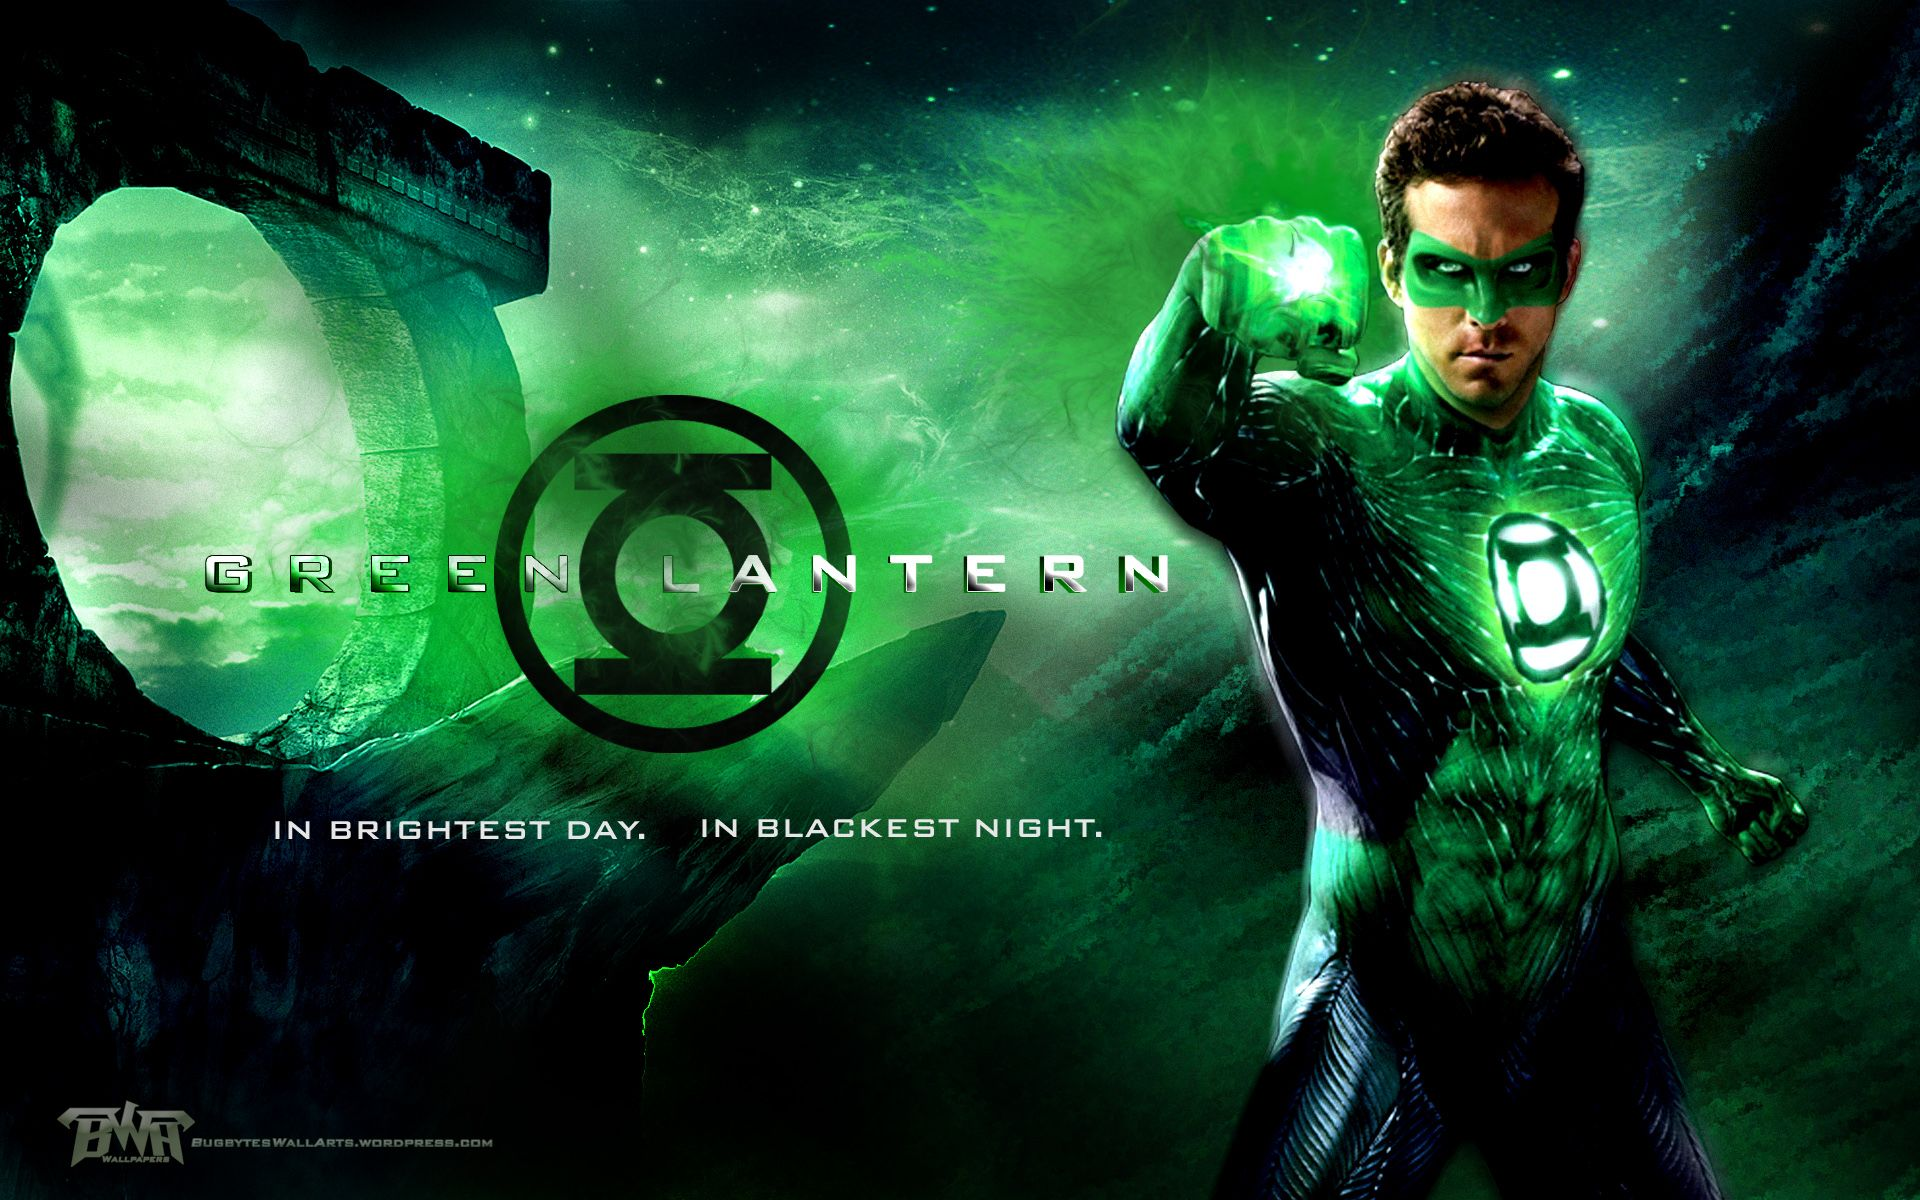 Awesome Green Lantern Wallpaper Images Cosmic Book News HD 1920x1200